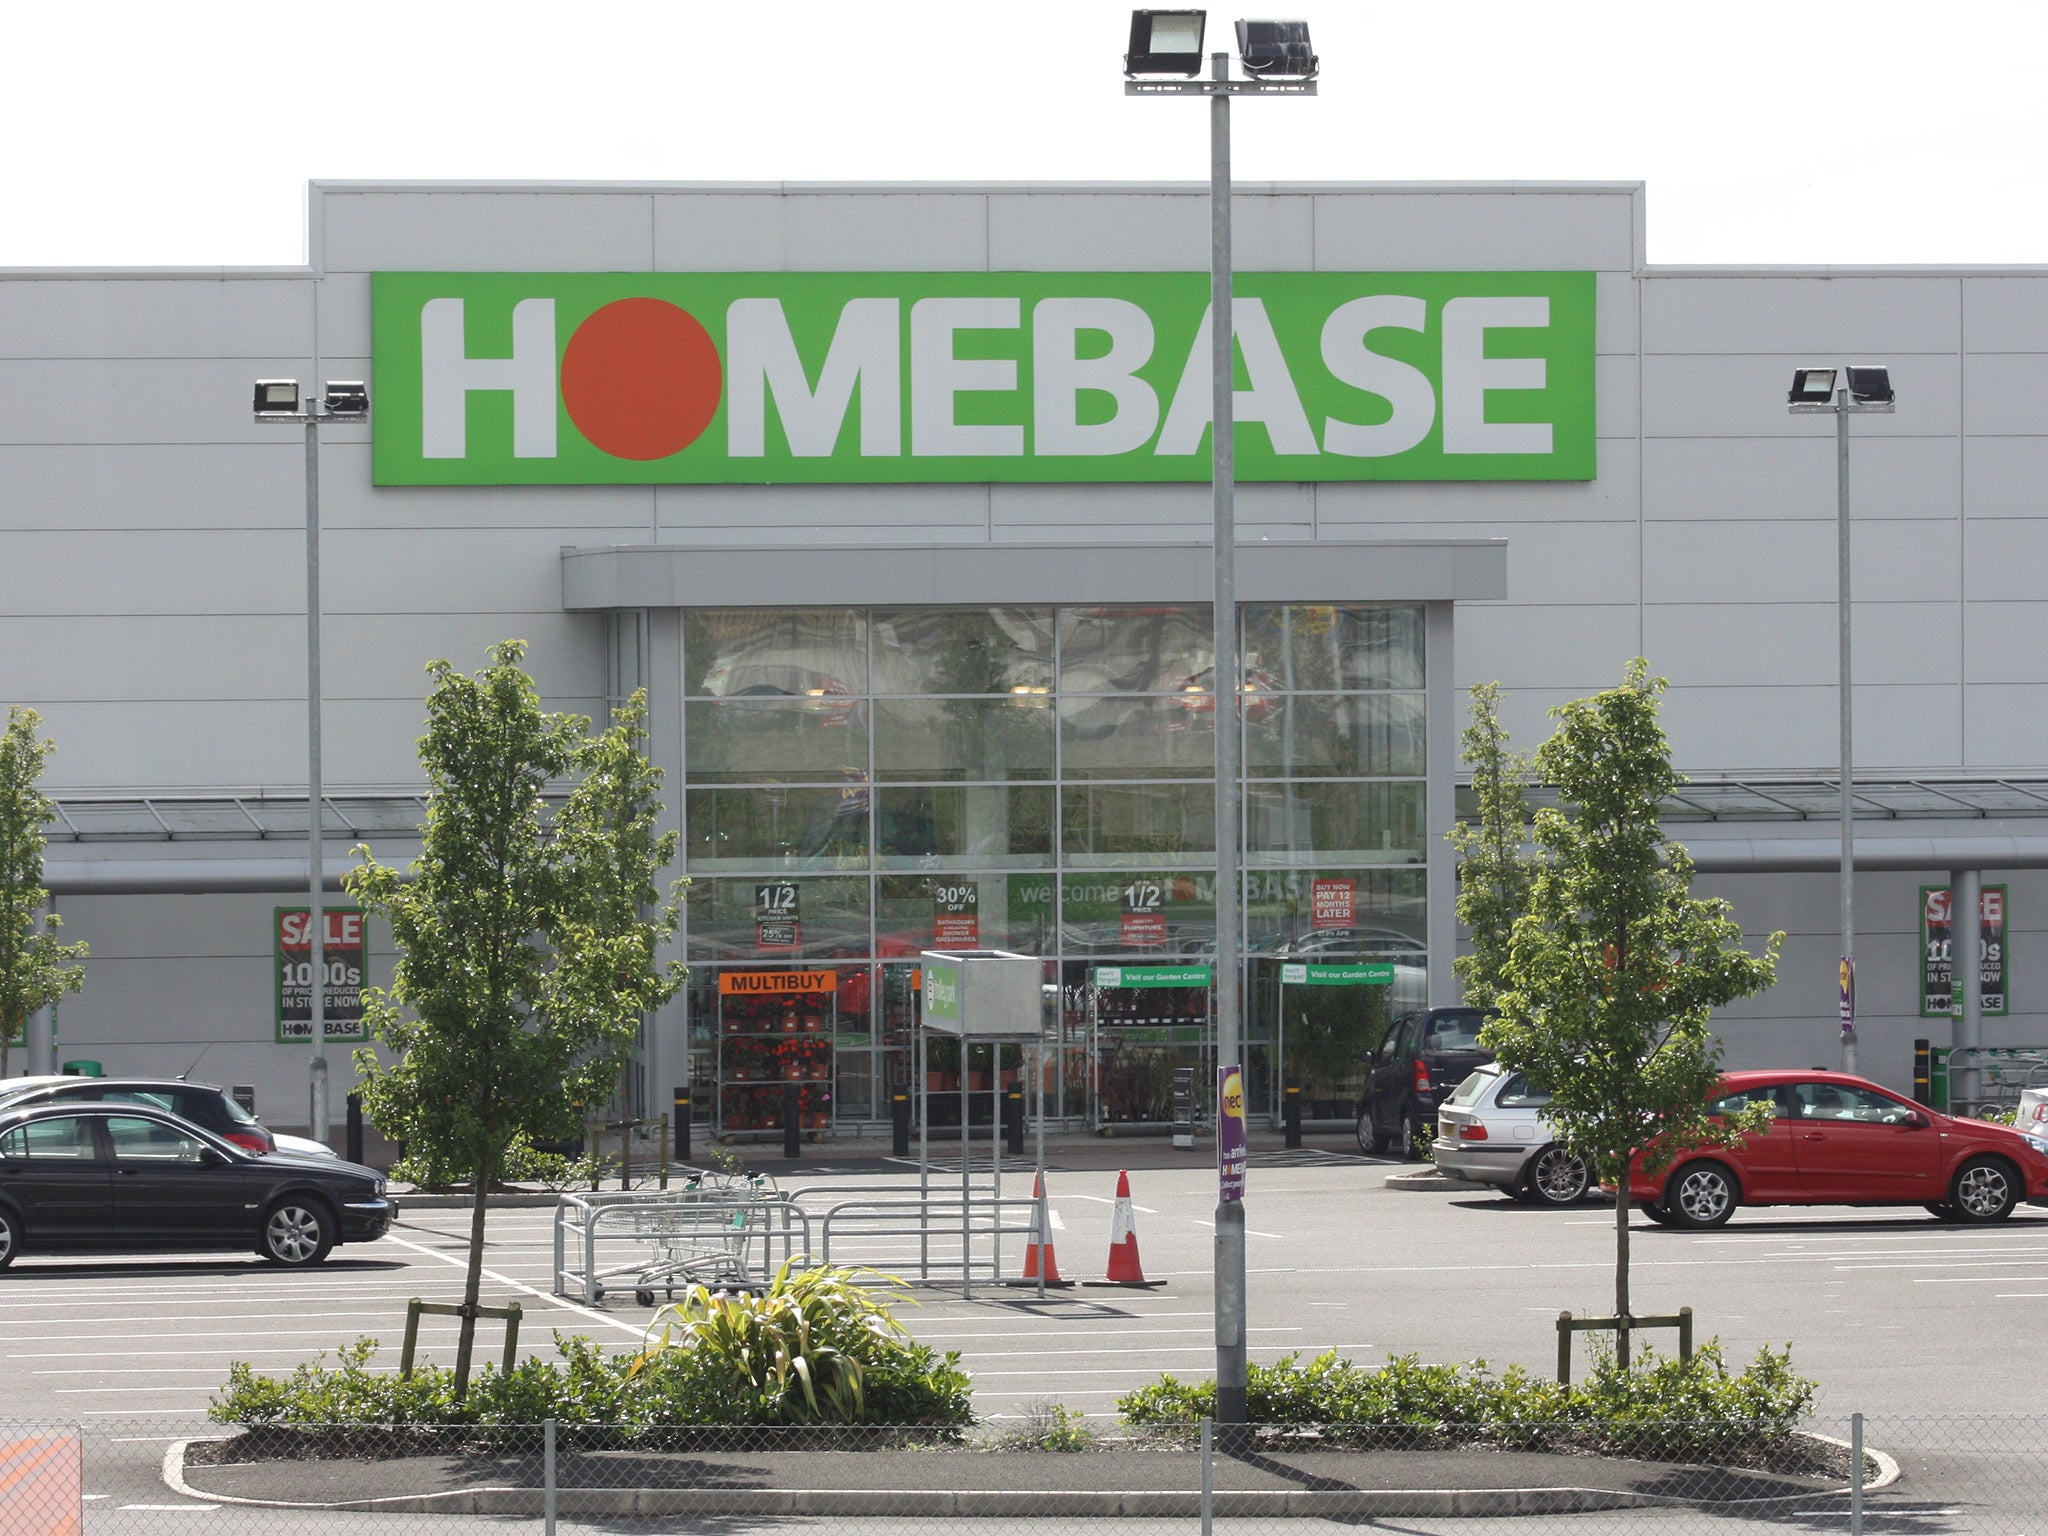 Home Retail Close To 340m Sale Of Homebase To Australian Retailer